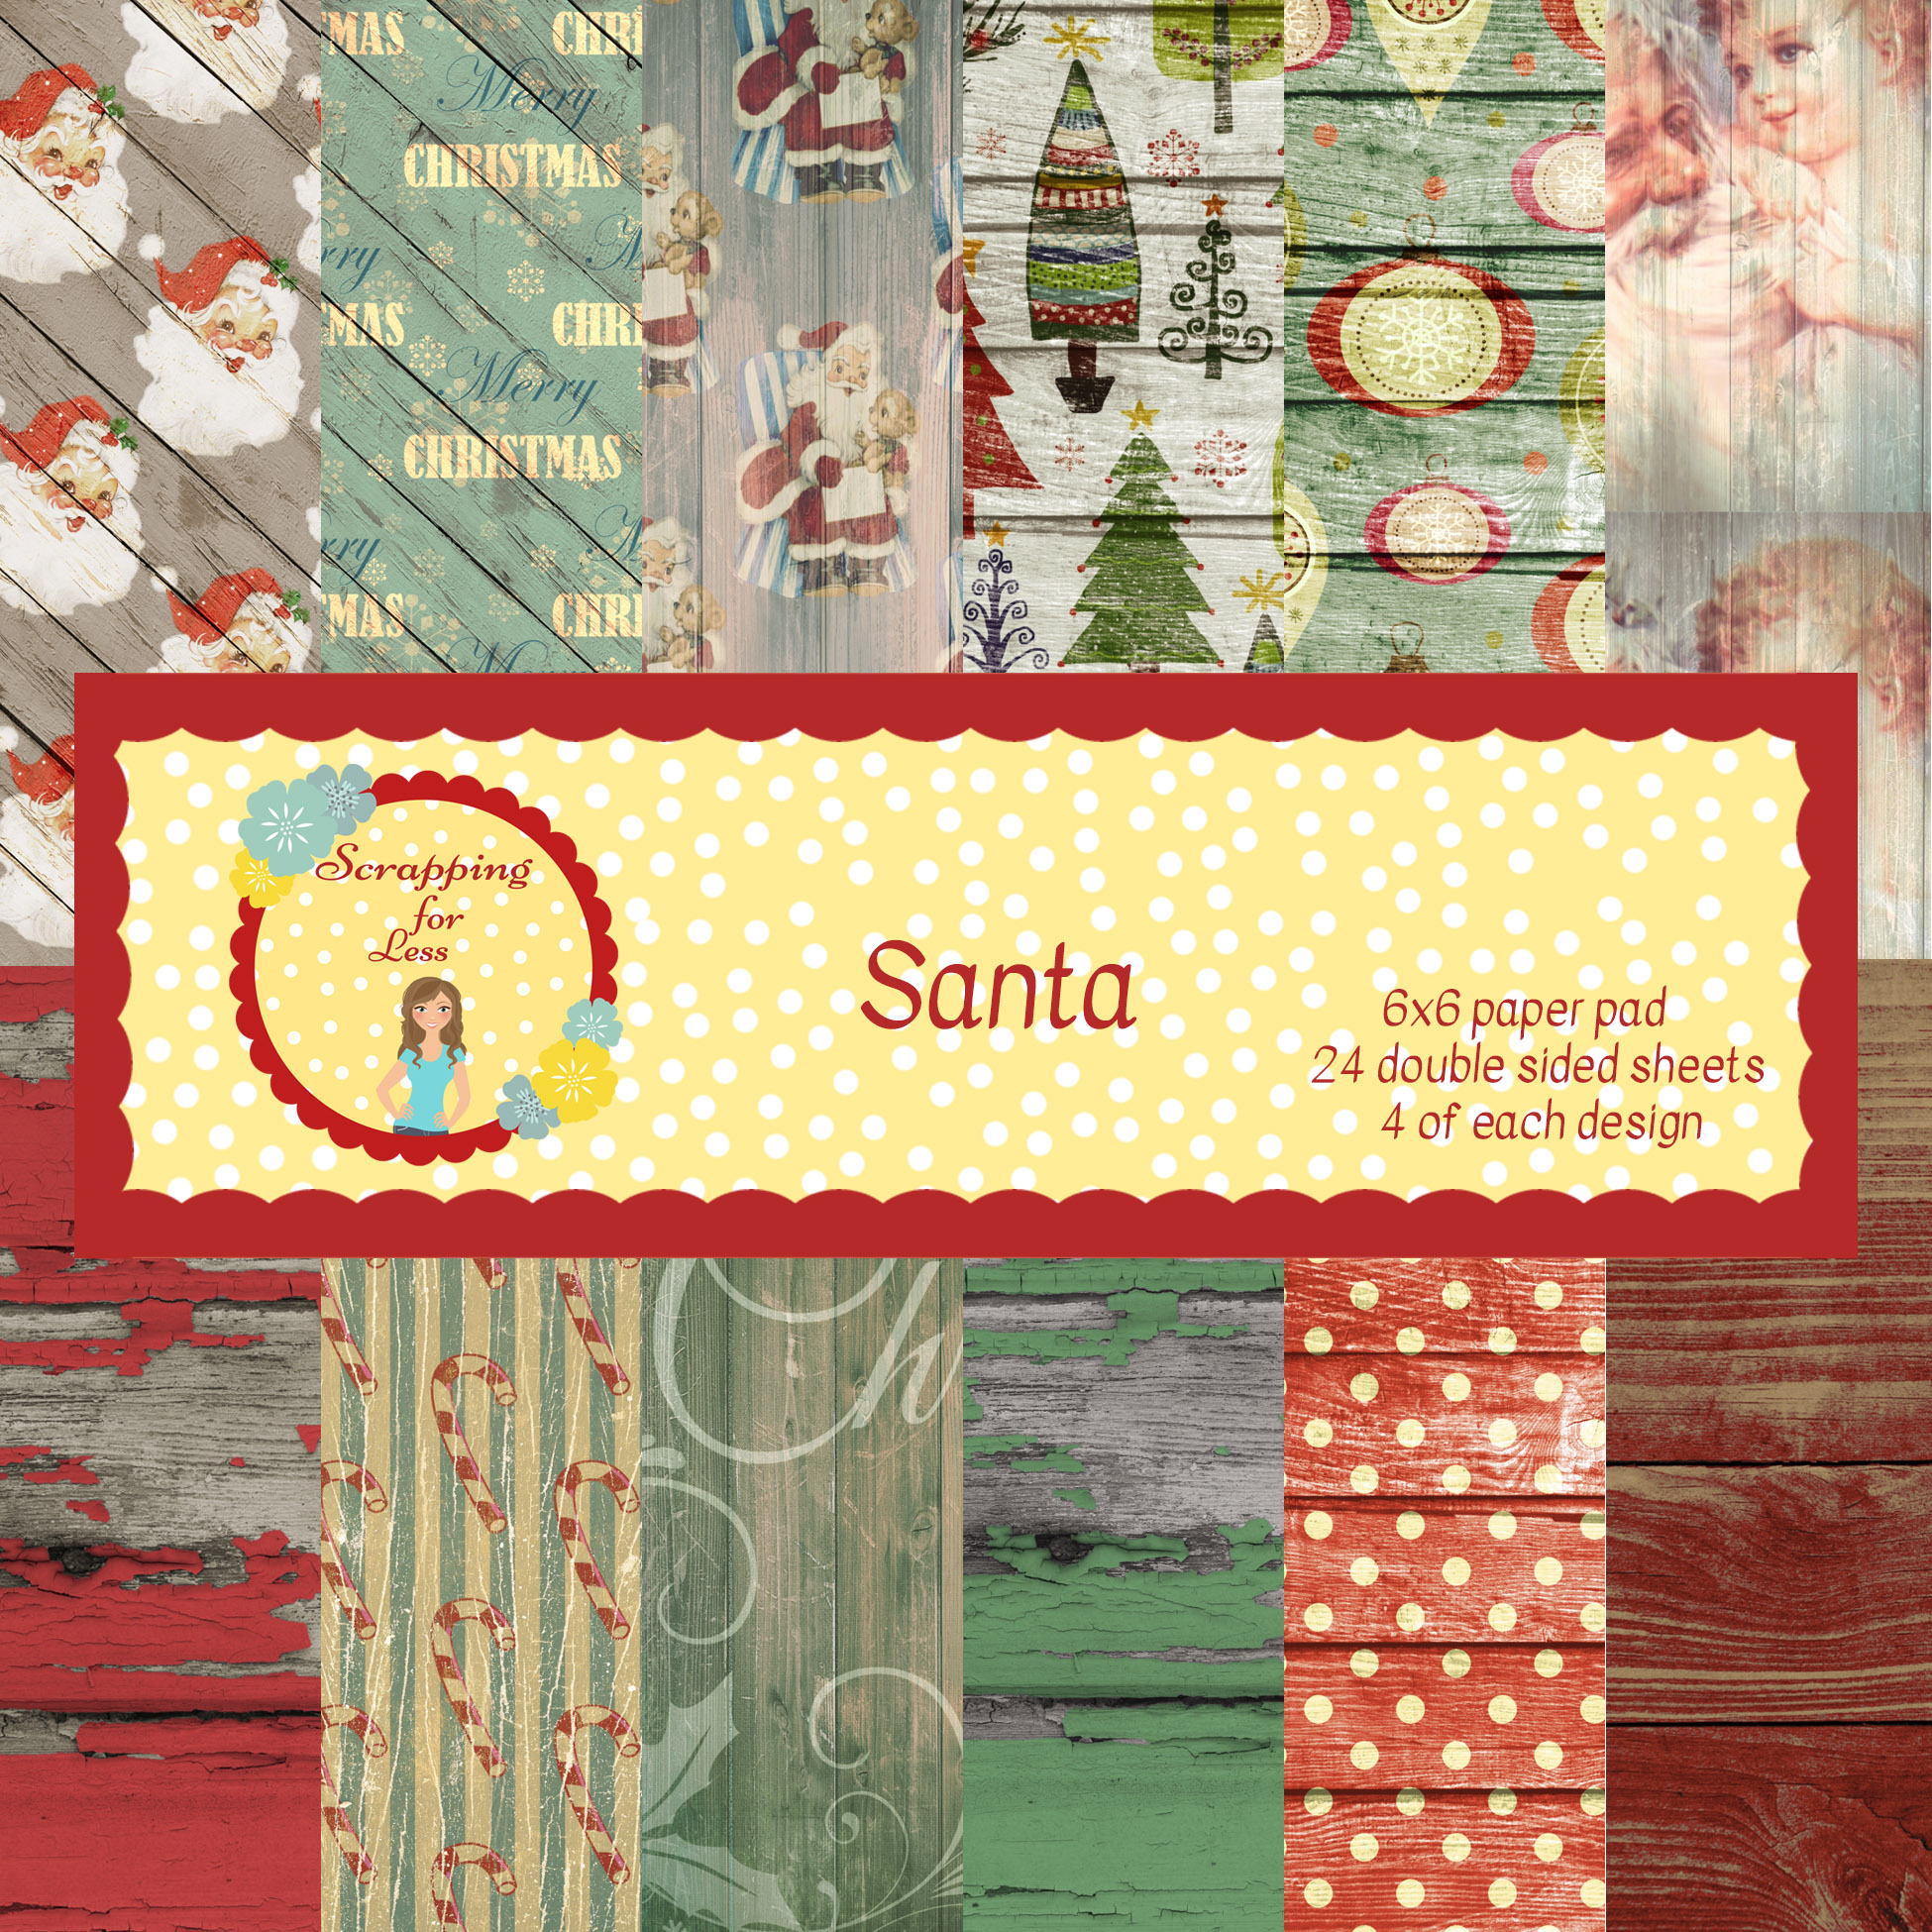 Scrapping for Less Santa 6x6 Paper Pad